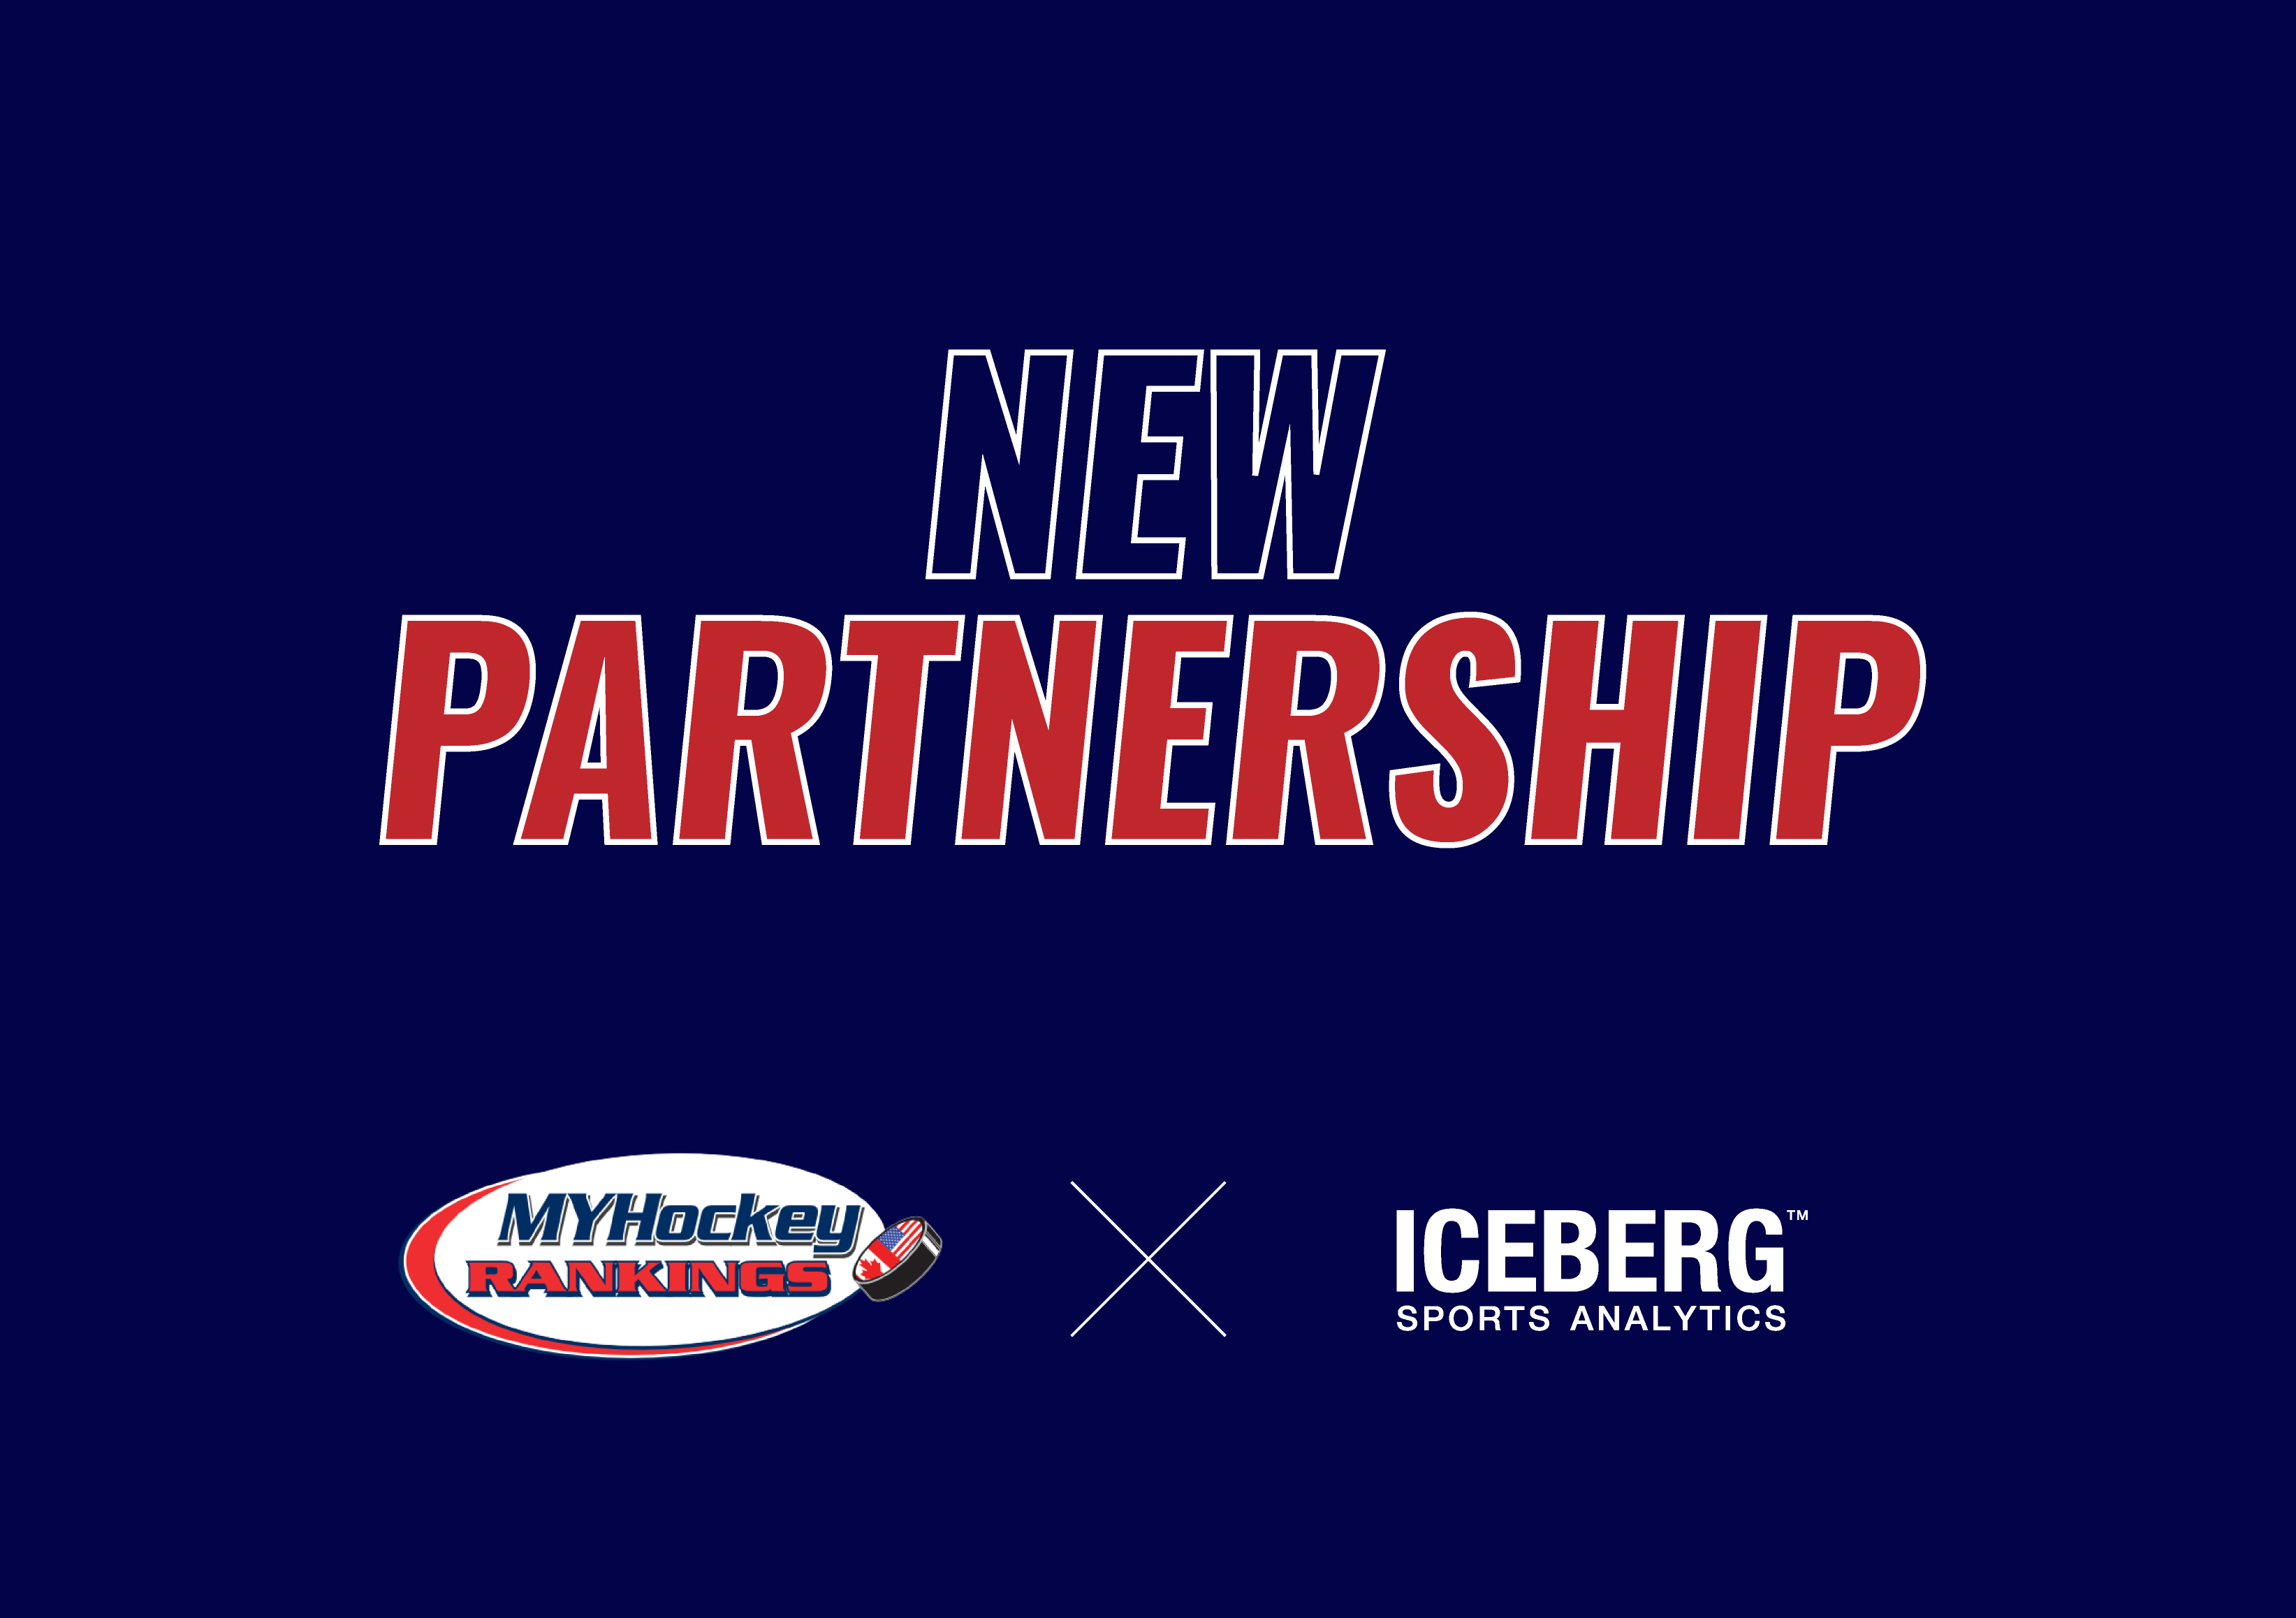 MYHockey Rankings, ICEBERG Sports Analytics Announce Partnership